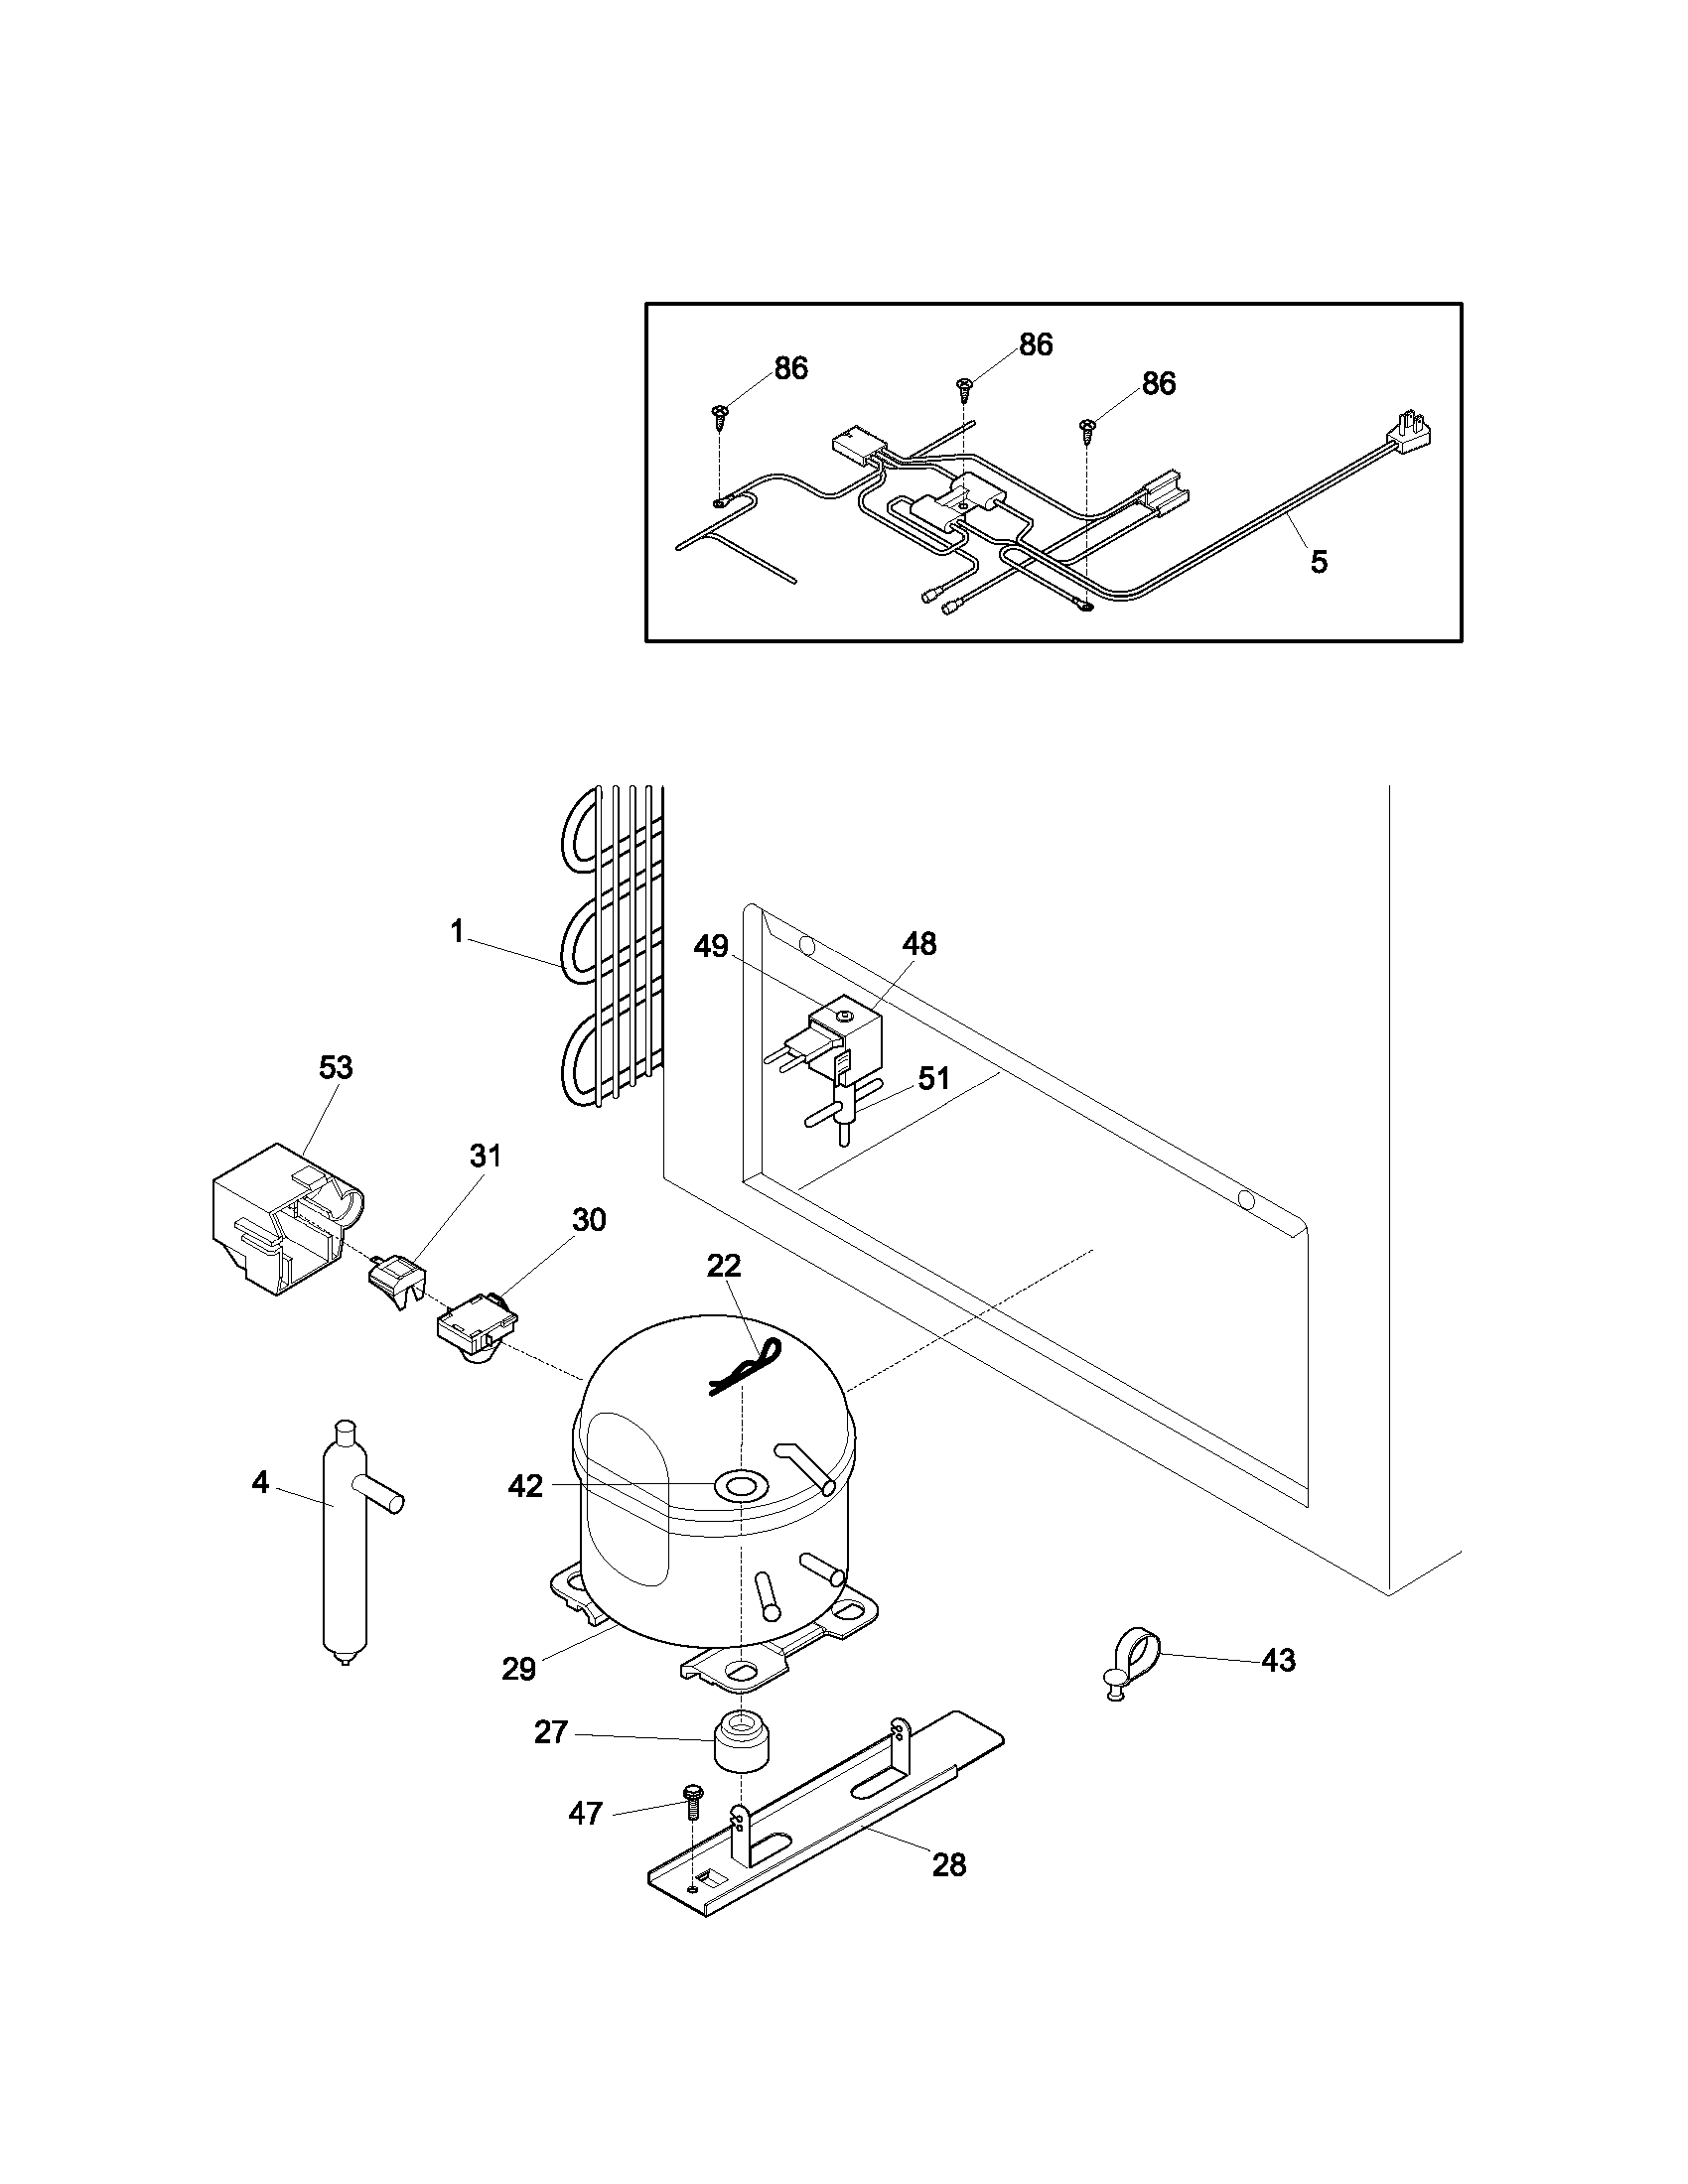 SYSTEM Diagram & Parts List for Model 25313541102 Kenmore